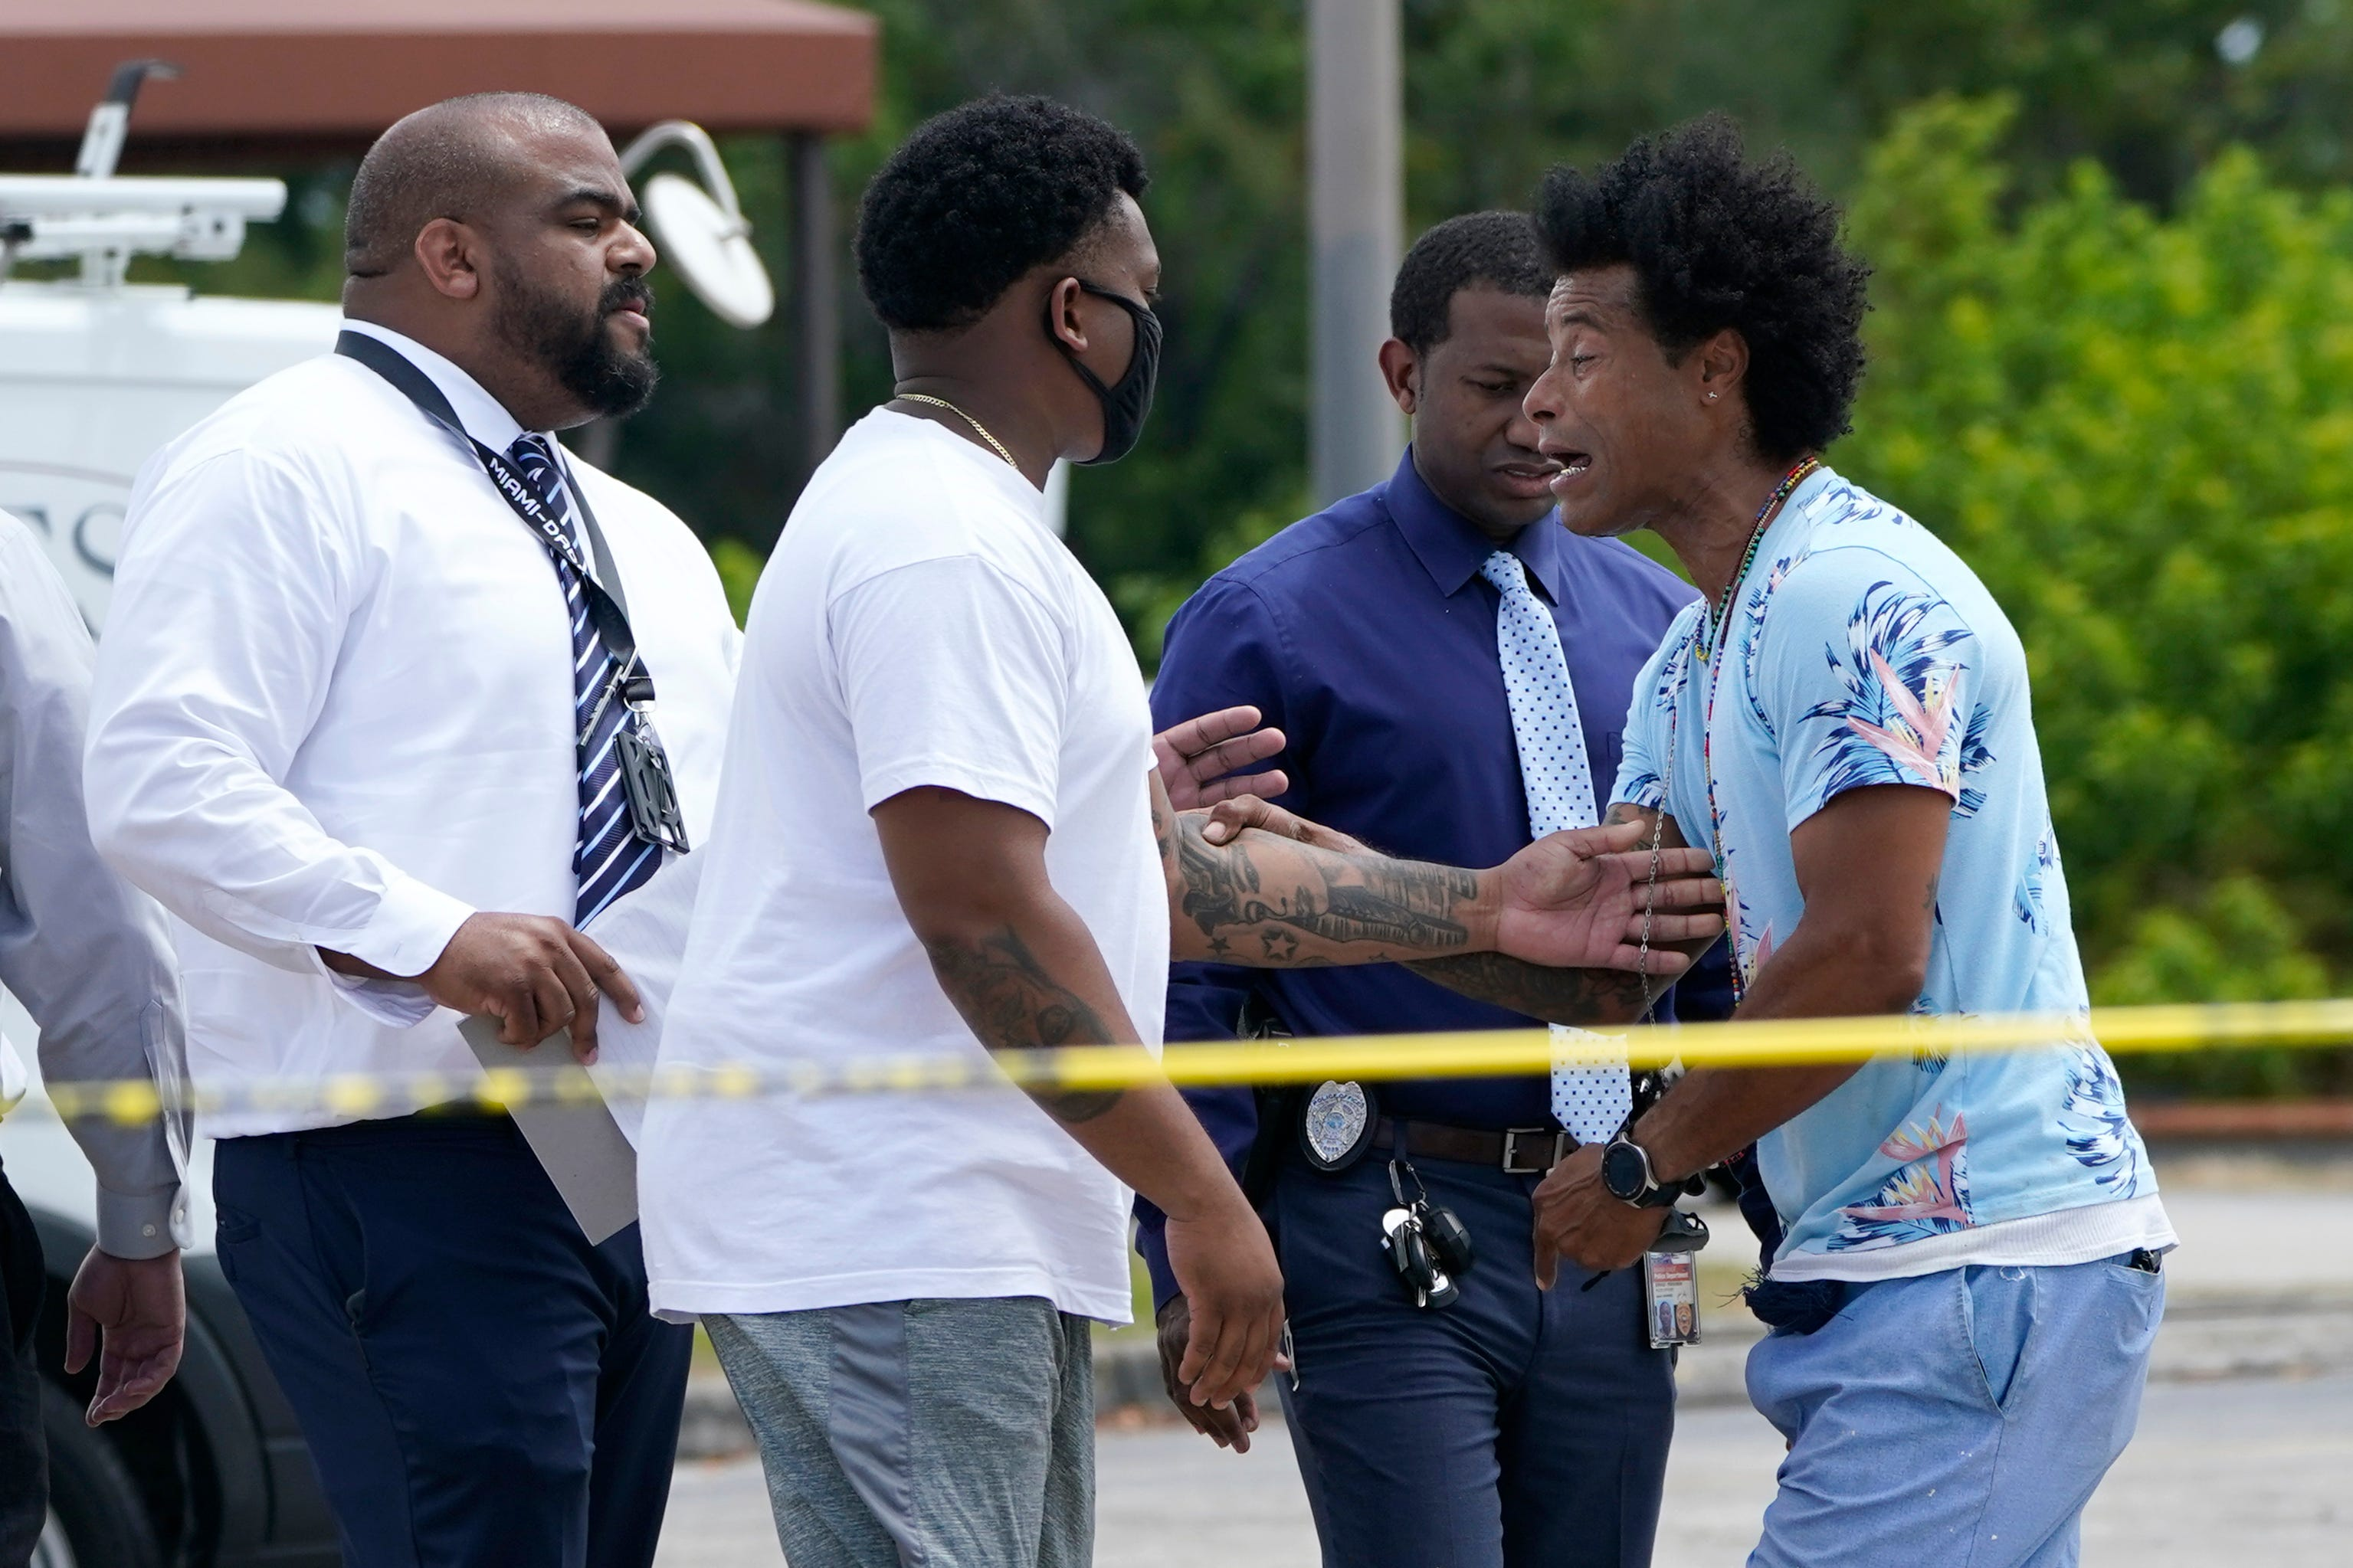 'Cowardly act': Two dead, more than 20 injured in Miami-area shooting; $125,000 reward offered for help in finding killers 3